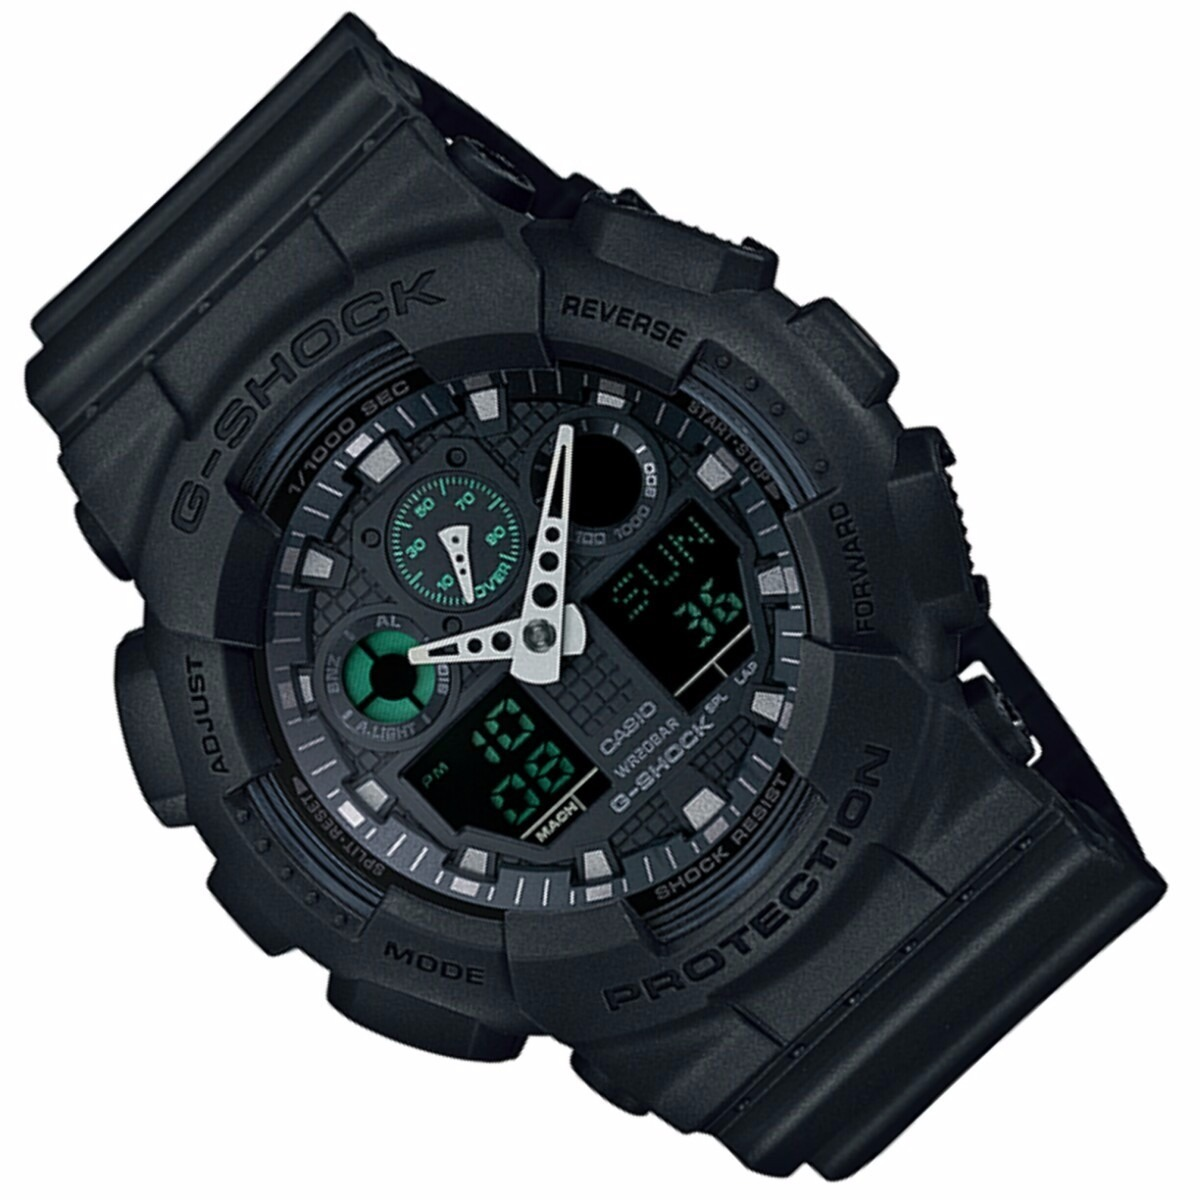 Casio G Shock Watch Ga 100 1a1d Fashion Sports Watch C9 - Relgios 79